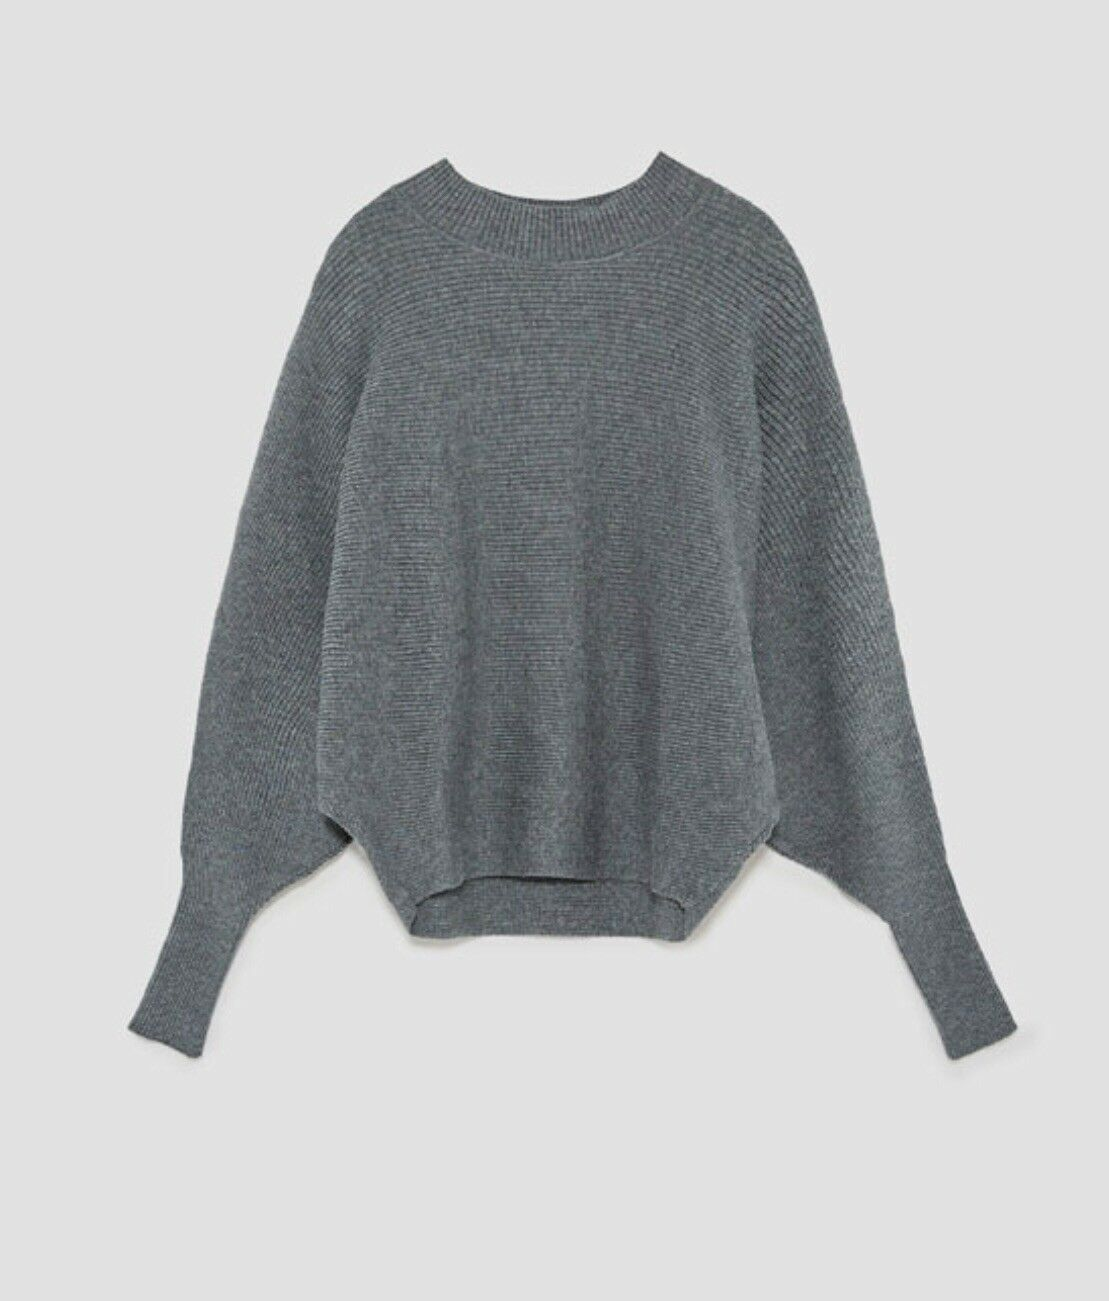 Zara Grey Batwing Sleeve Sweater Size M